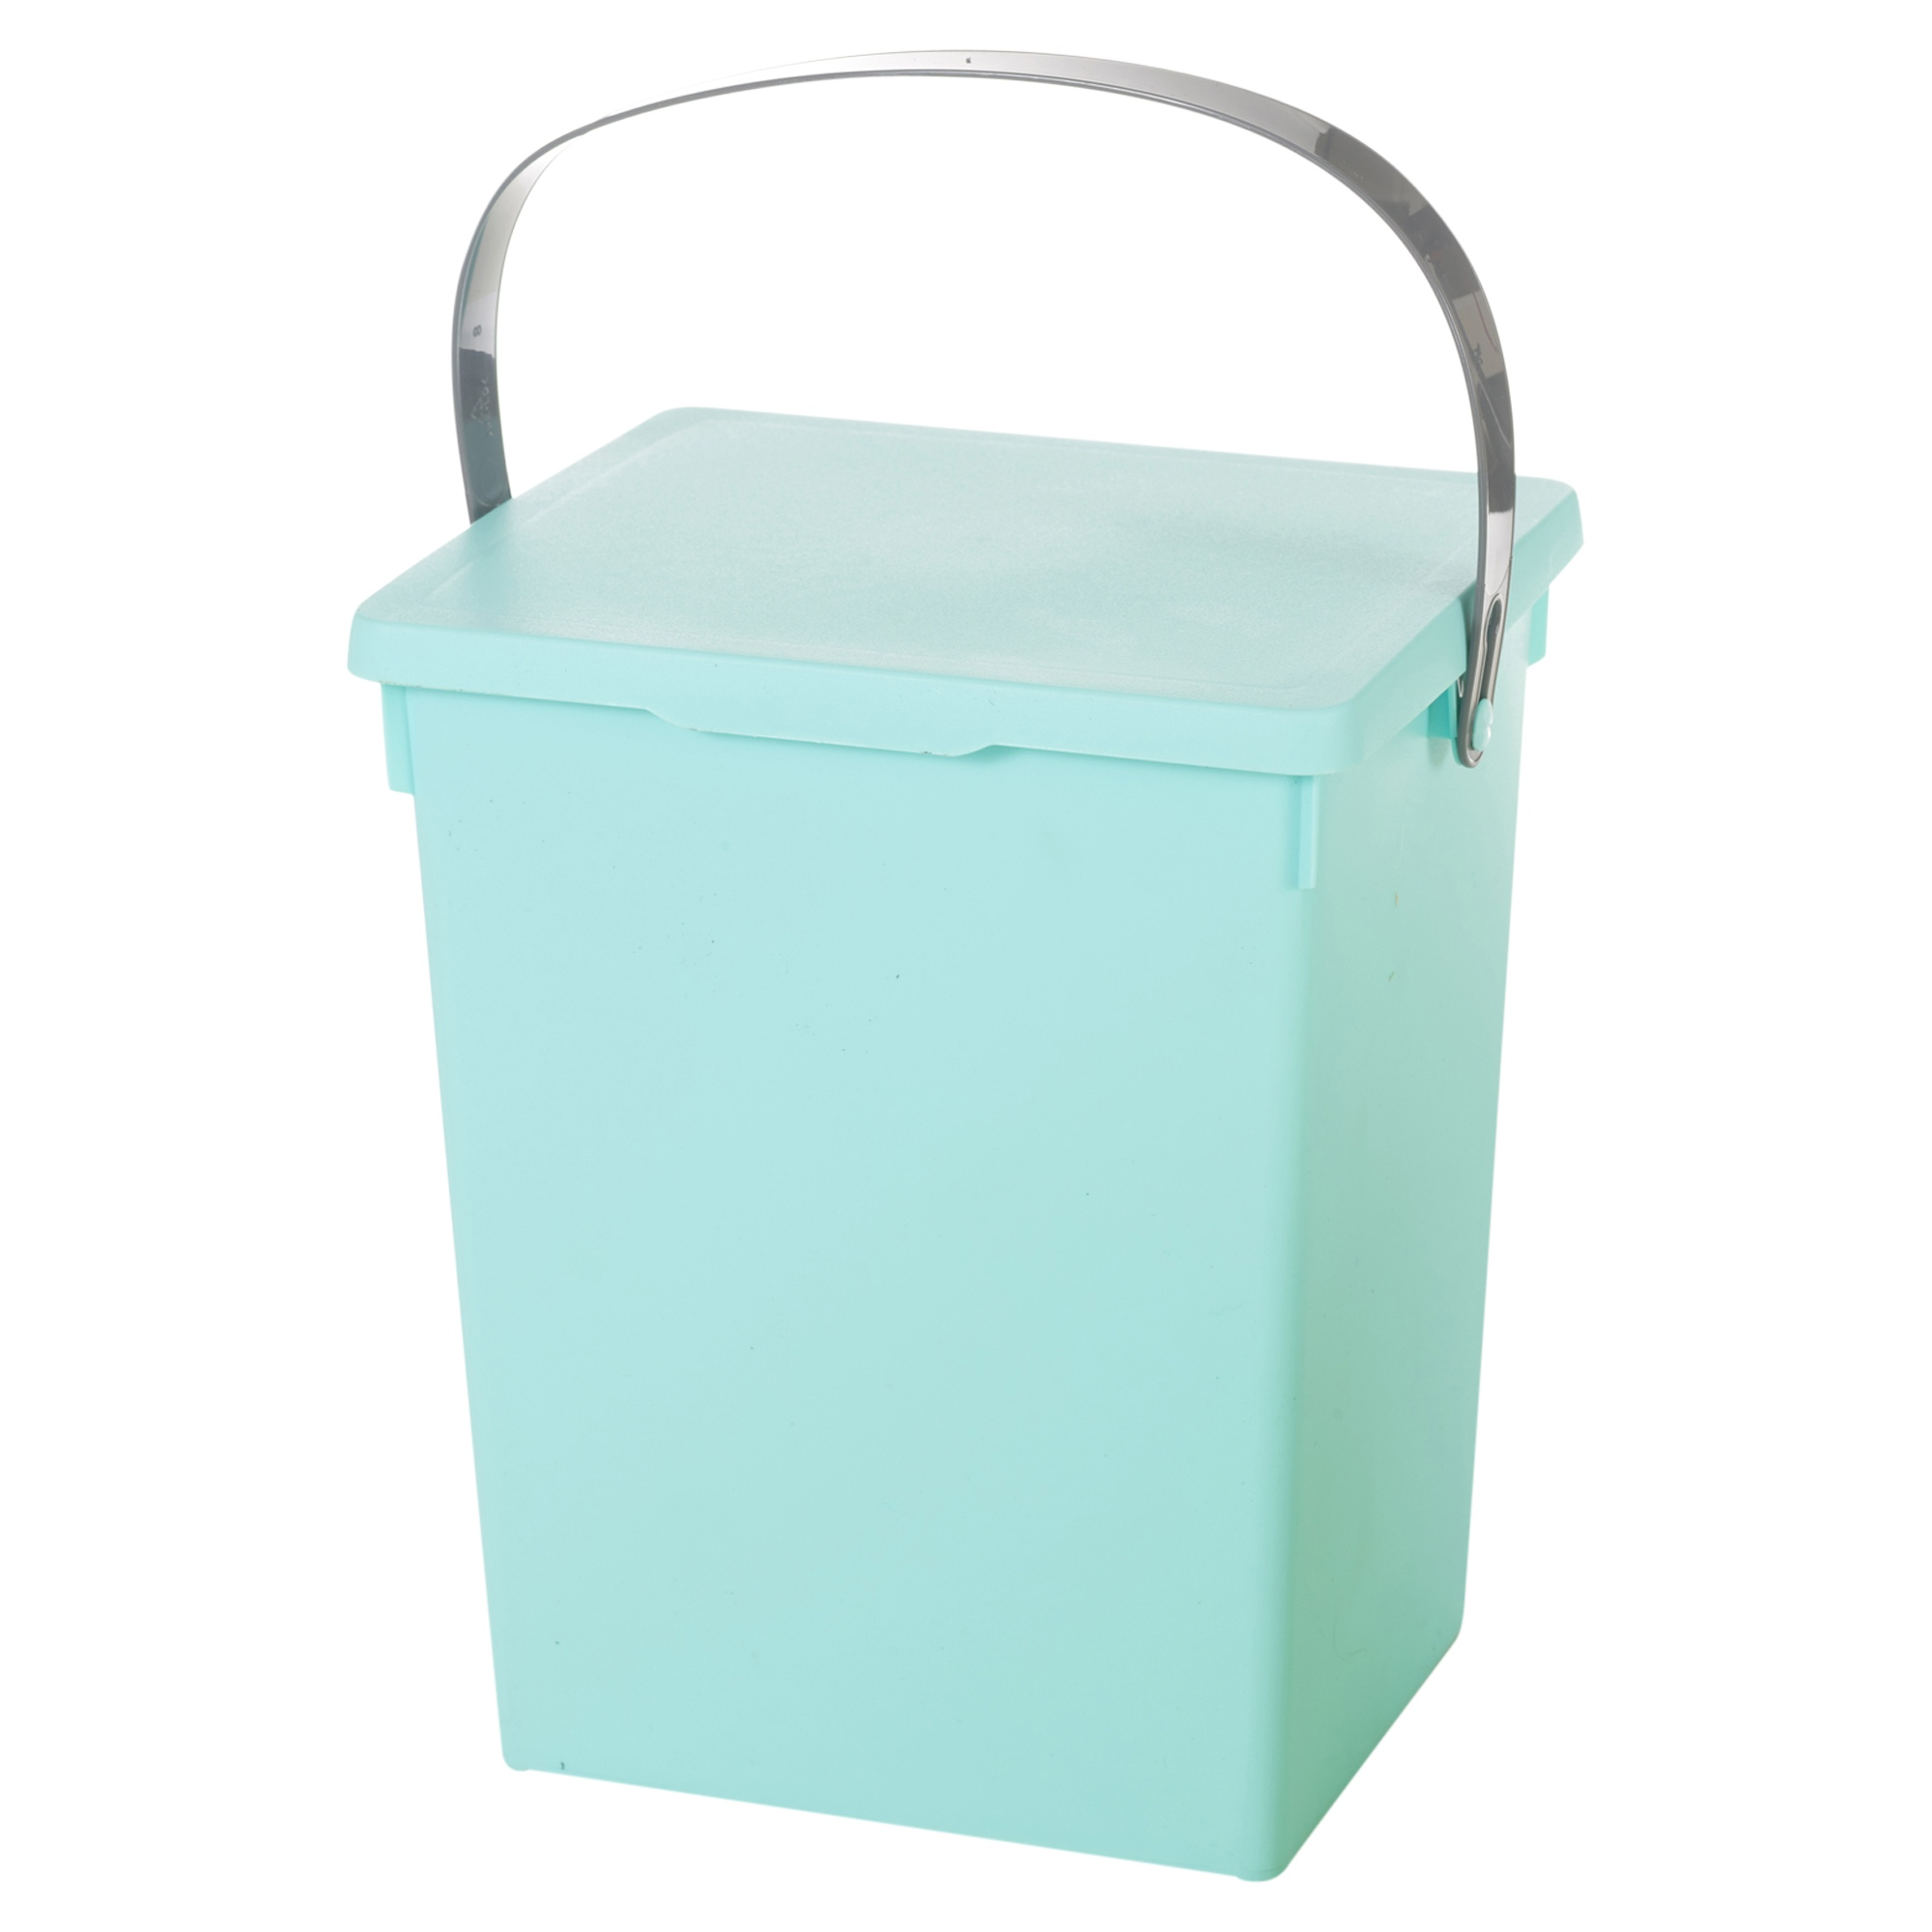 5 Litre Small Table Top Food Recycling Bin Kitchen Worktop